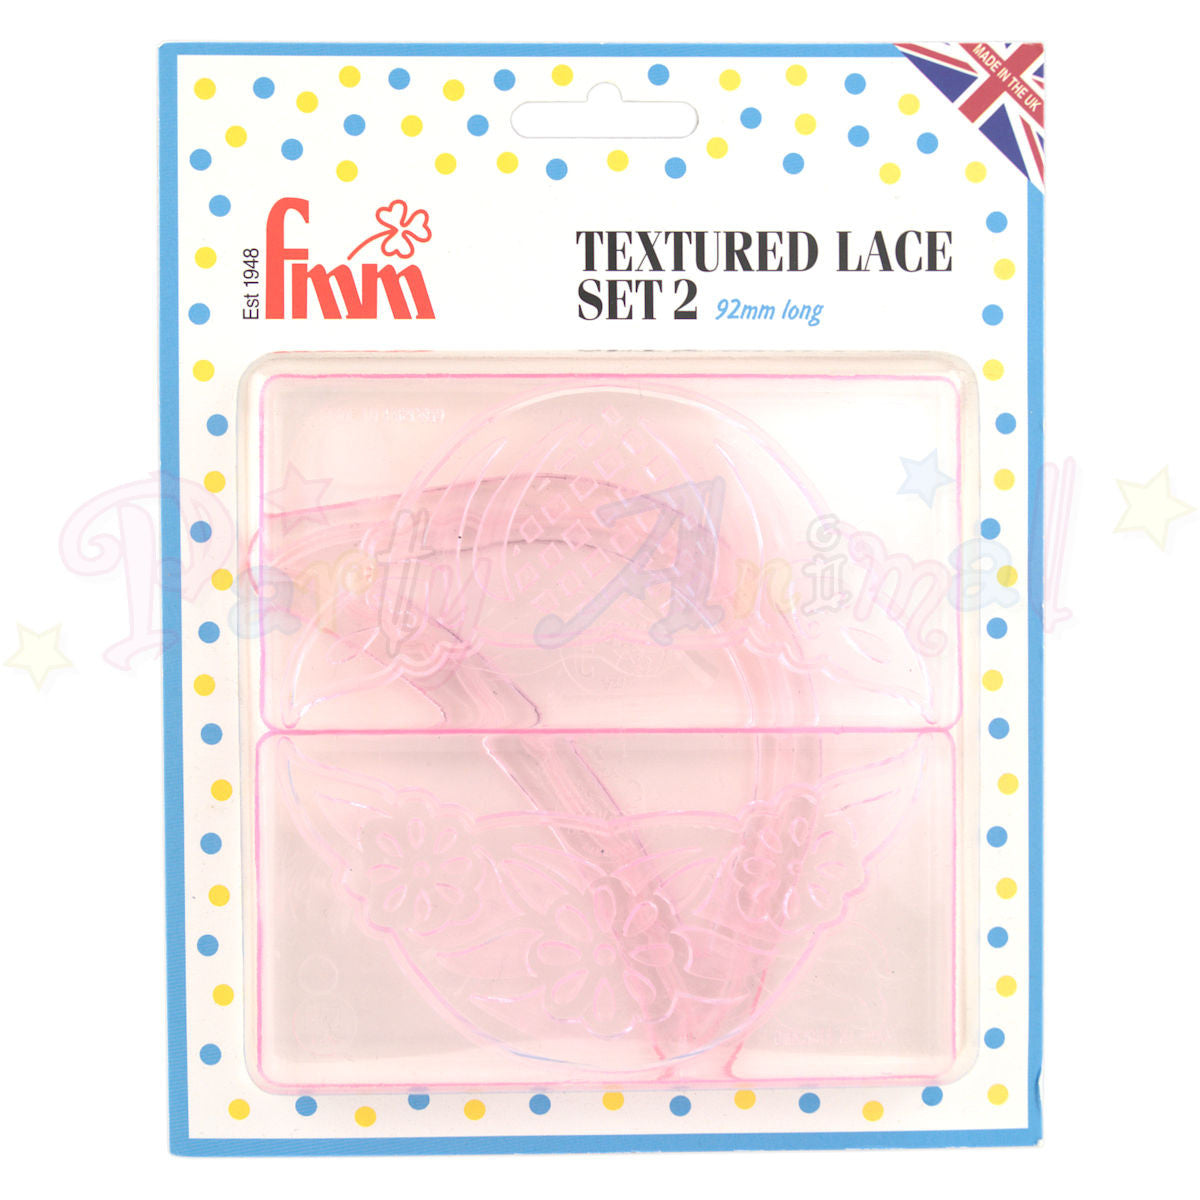 FMM Textured Lace Set 2 - 92mm long